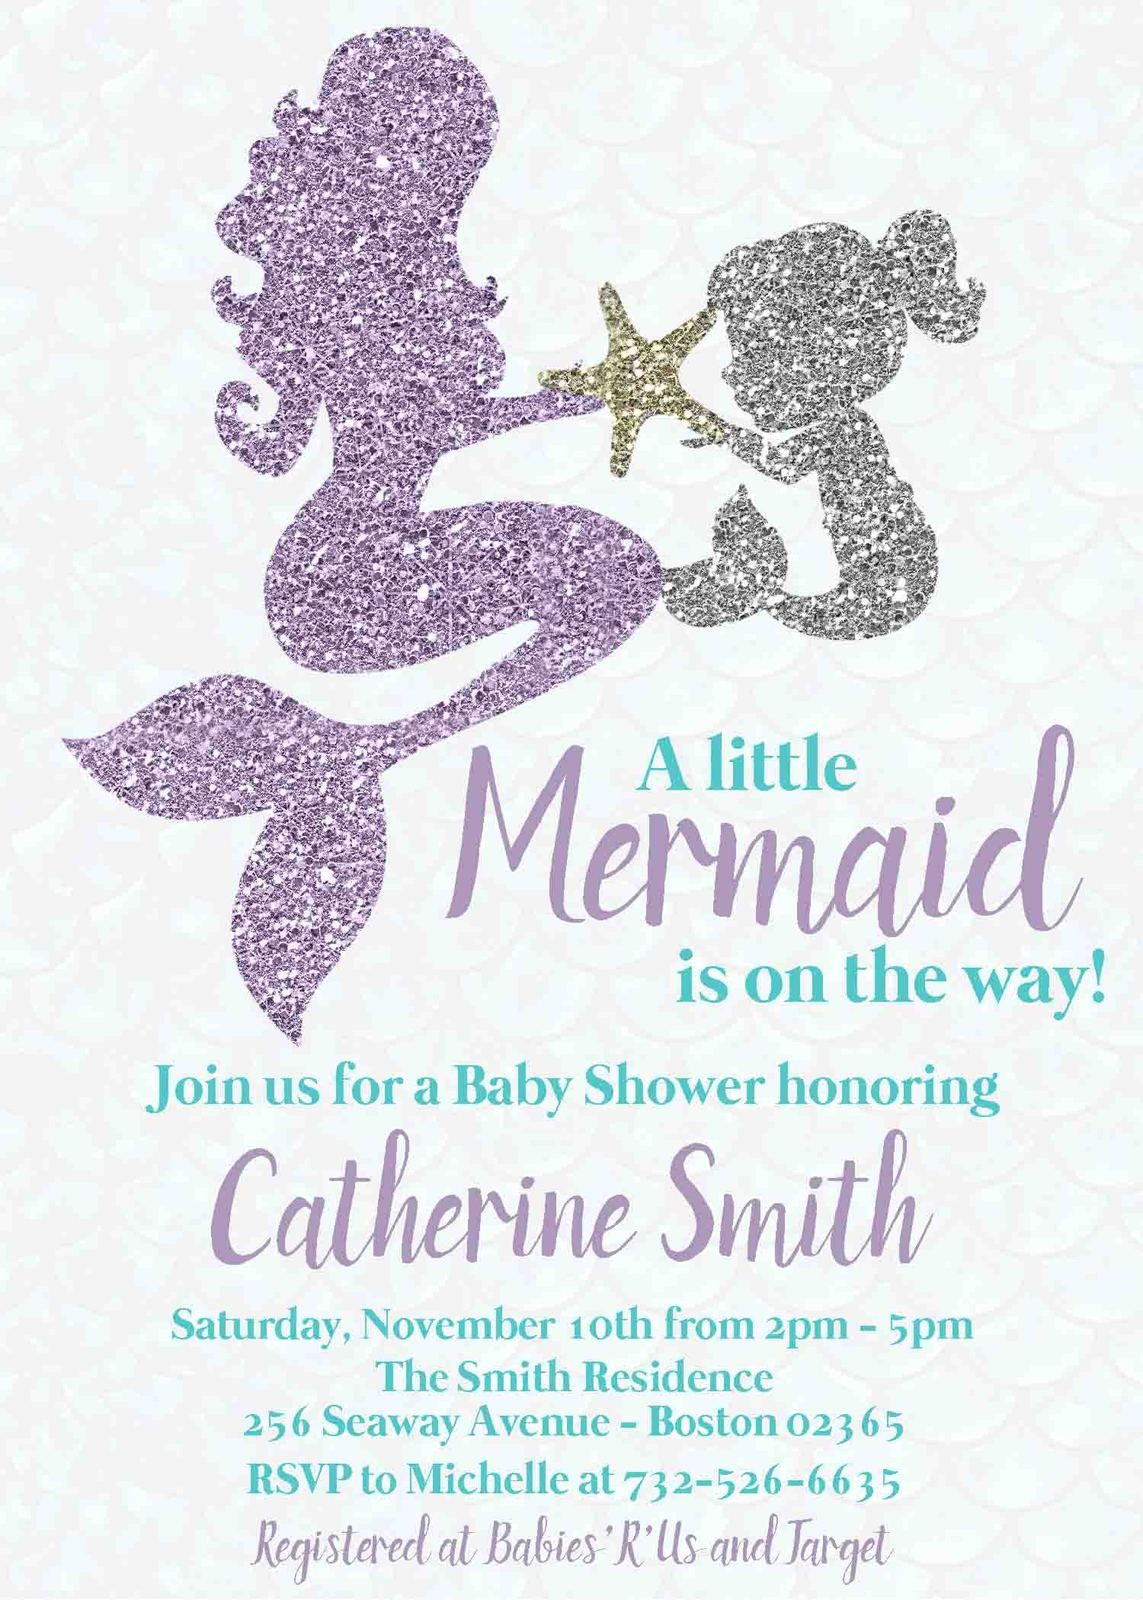 Full Size of Baby Shower:63+ Delightful Cheap Baby Shower Invitations Image Inspirations Cheap Baby Shower Invitations Mermaid Baby Shower Invitation Mother Baby Under The Sea Party Teal Teal And Lavender Glitter Mermaid Mother And Child Baby Shower Invitation